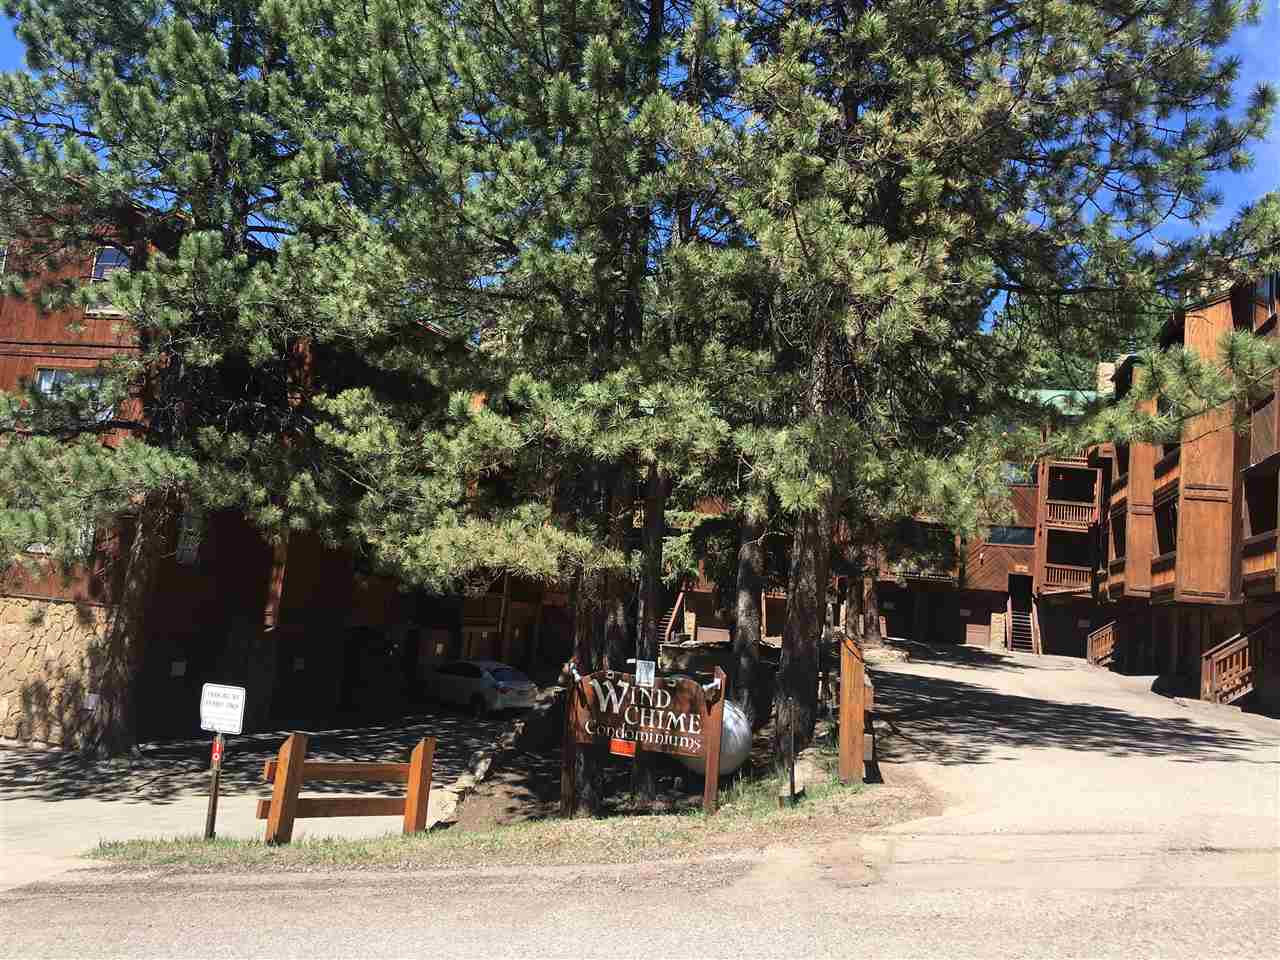 Unit 104 Windchimes is a bright 1 bedroom, 1 bath with a open floorpan in the kitchen / living room, and a 1 car garage.  In unit washer/dryer.  Just a short walk to the mountain biking and ski hill. Remodeled and ready for use.  Comes furnished. Enjoy all the amenities that Resort membership allows. Walking distance to restaurants and all the events that the Resort does on the ski hill and during the Summer.  Come relax and enjoy the mountains.  High speed internet to the unit which you won't need because you will be relaxing. Winchime HOA covers water, high speed internet, outside electric, outside snow removal, outside maintenance, cable and outside insurance.